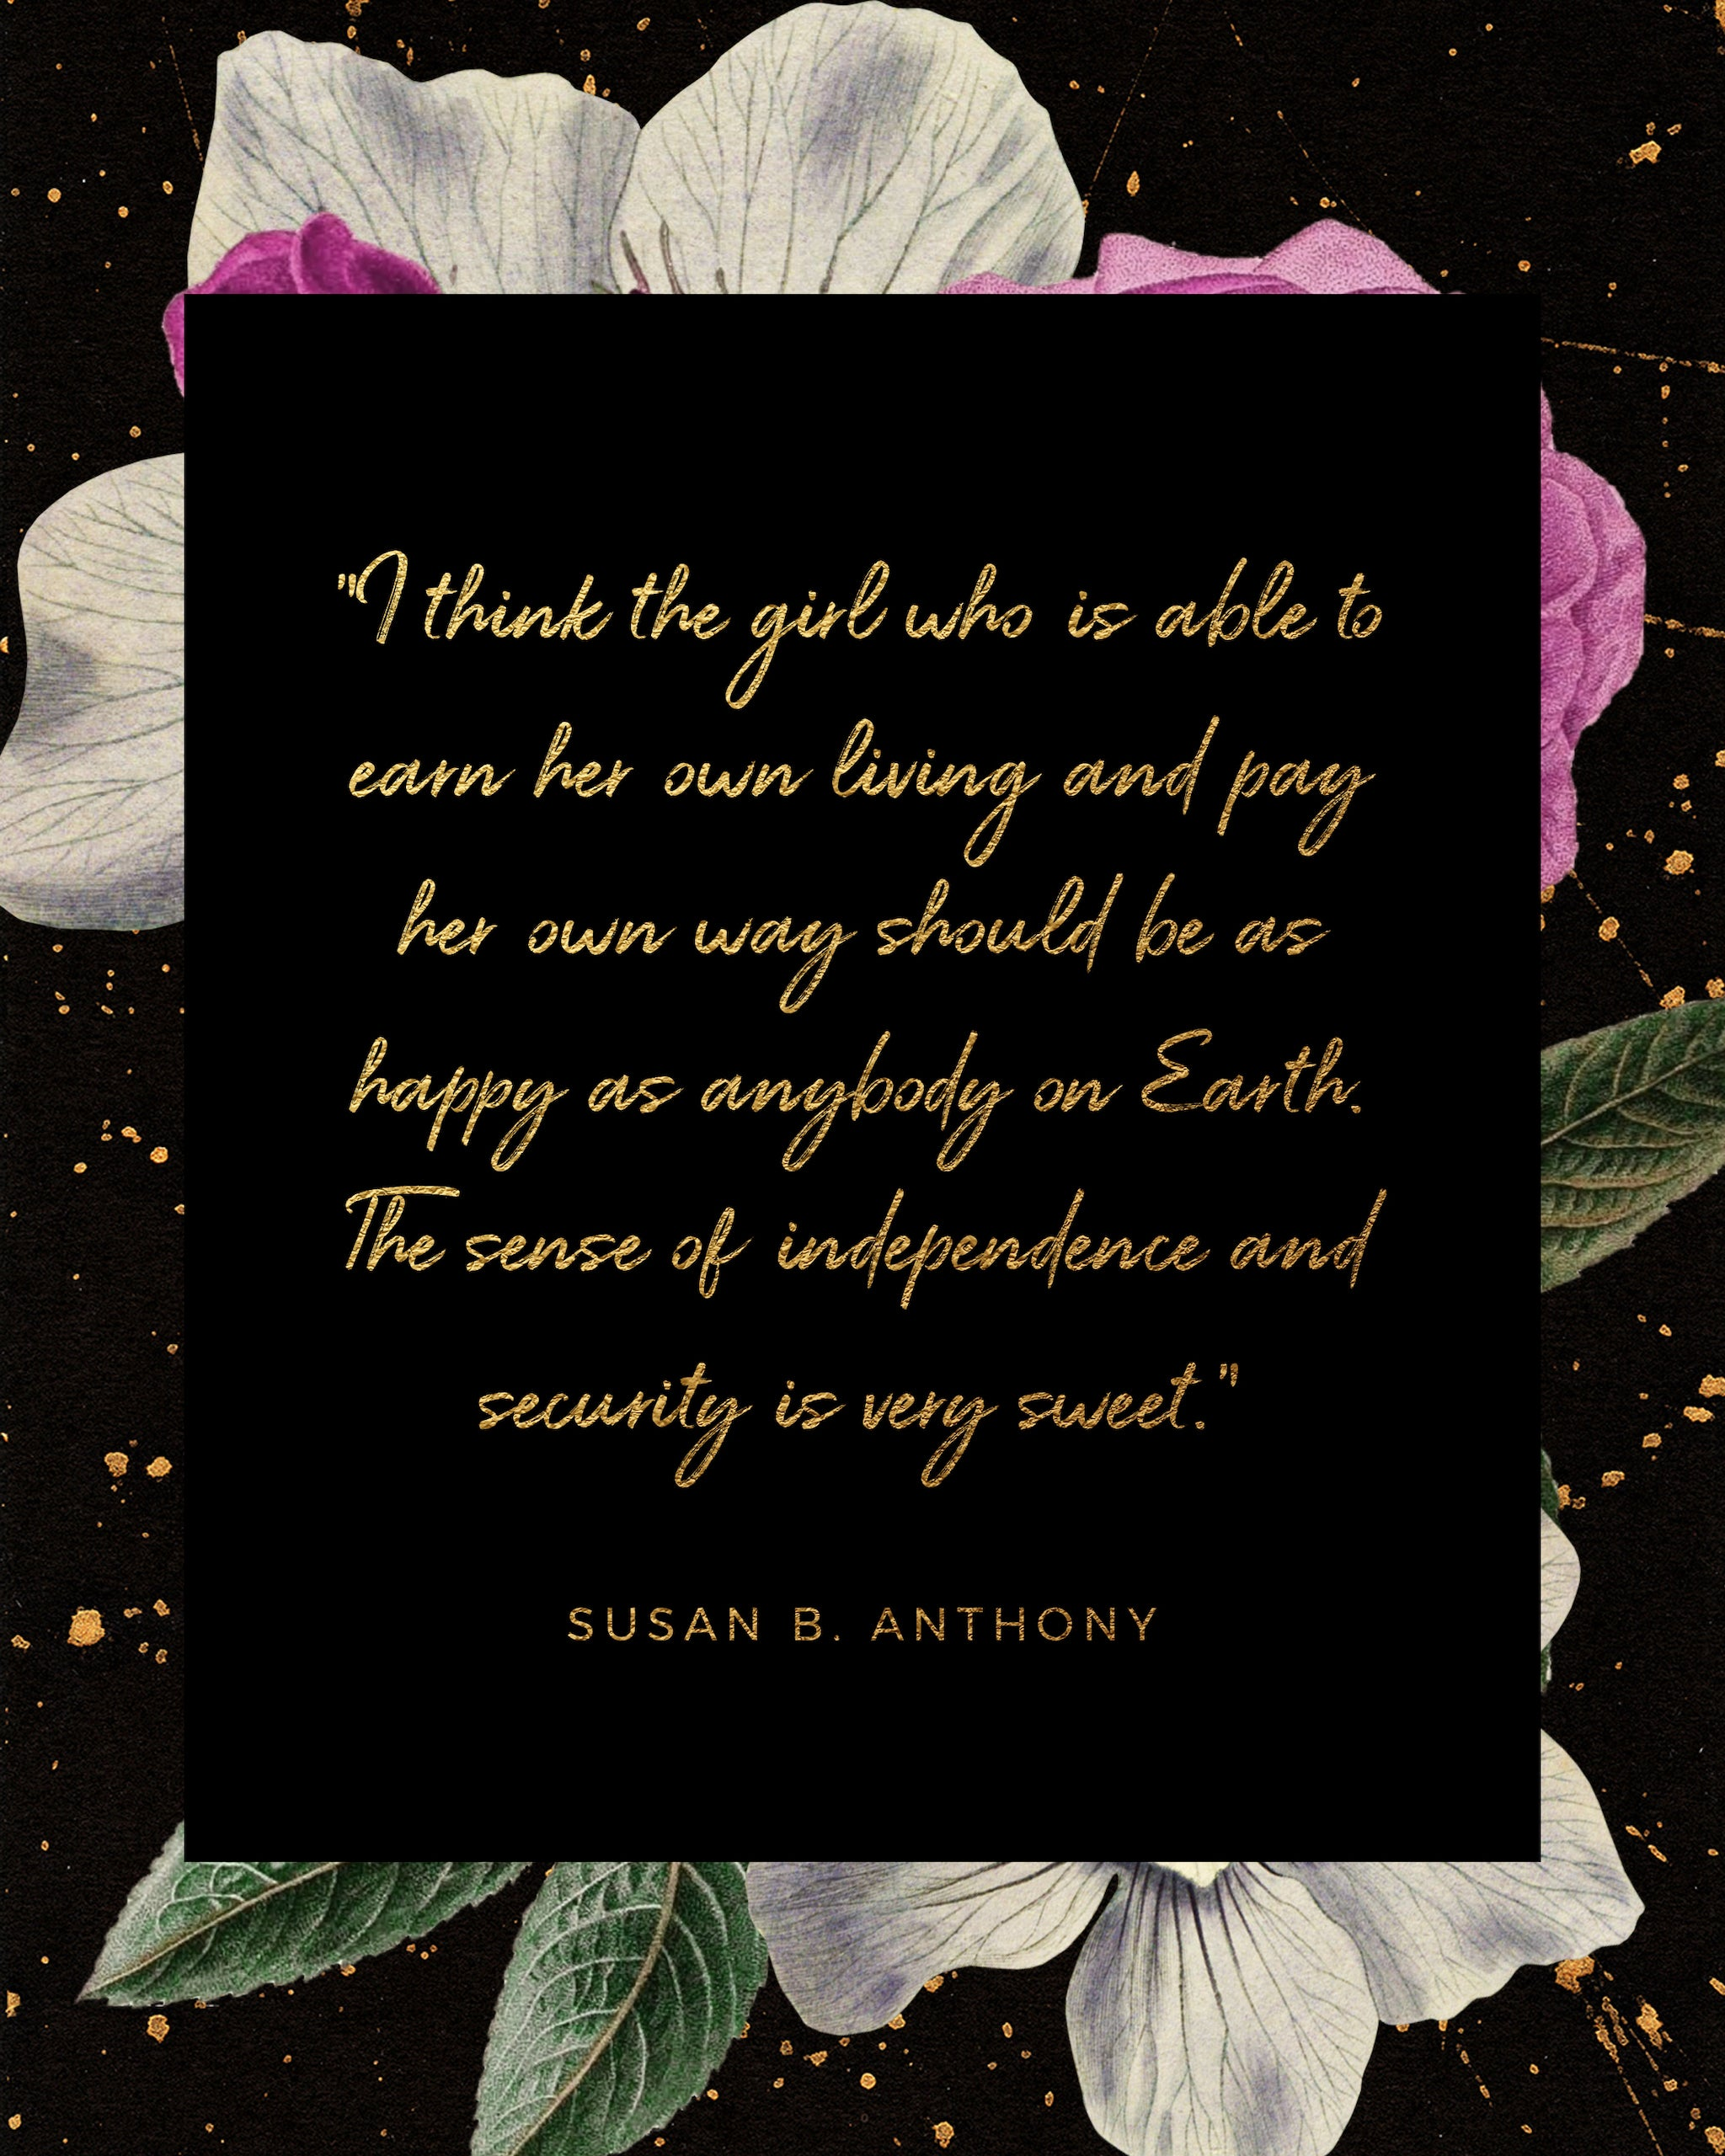 Quote: I think the girl who is able to earn her own living and pay her own way should be as happy as anybody on Earth. The sense of independence and security is very sweet. Susan B. Anthony